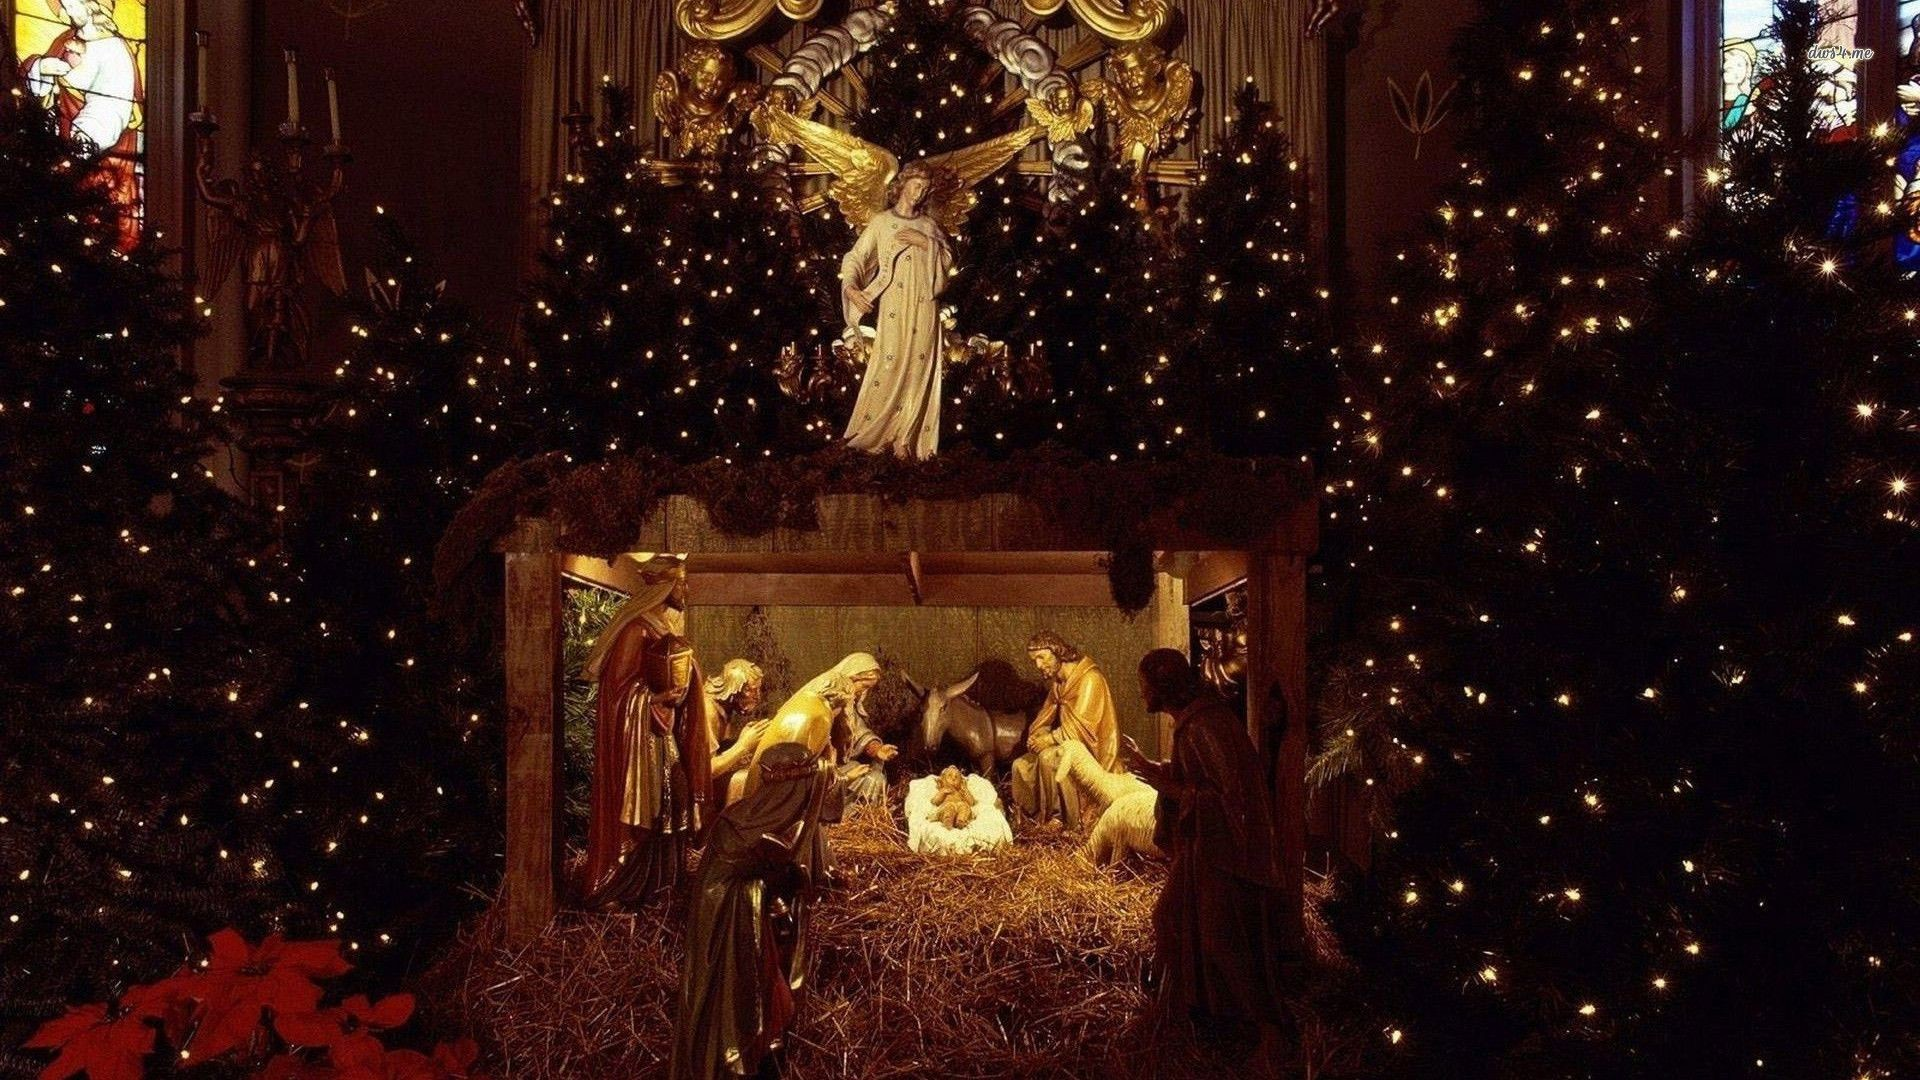 Merry Christmas Jesus Images Hd.Christmas Wallpapers And Screensavers 70 Images